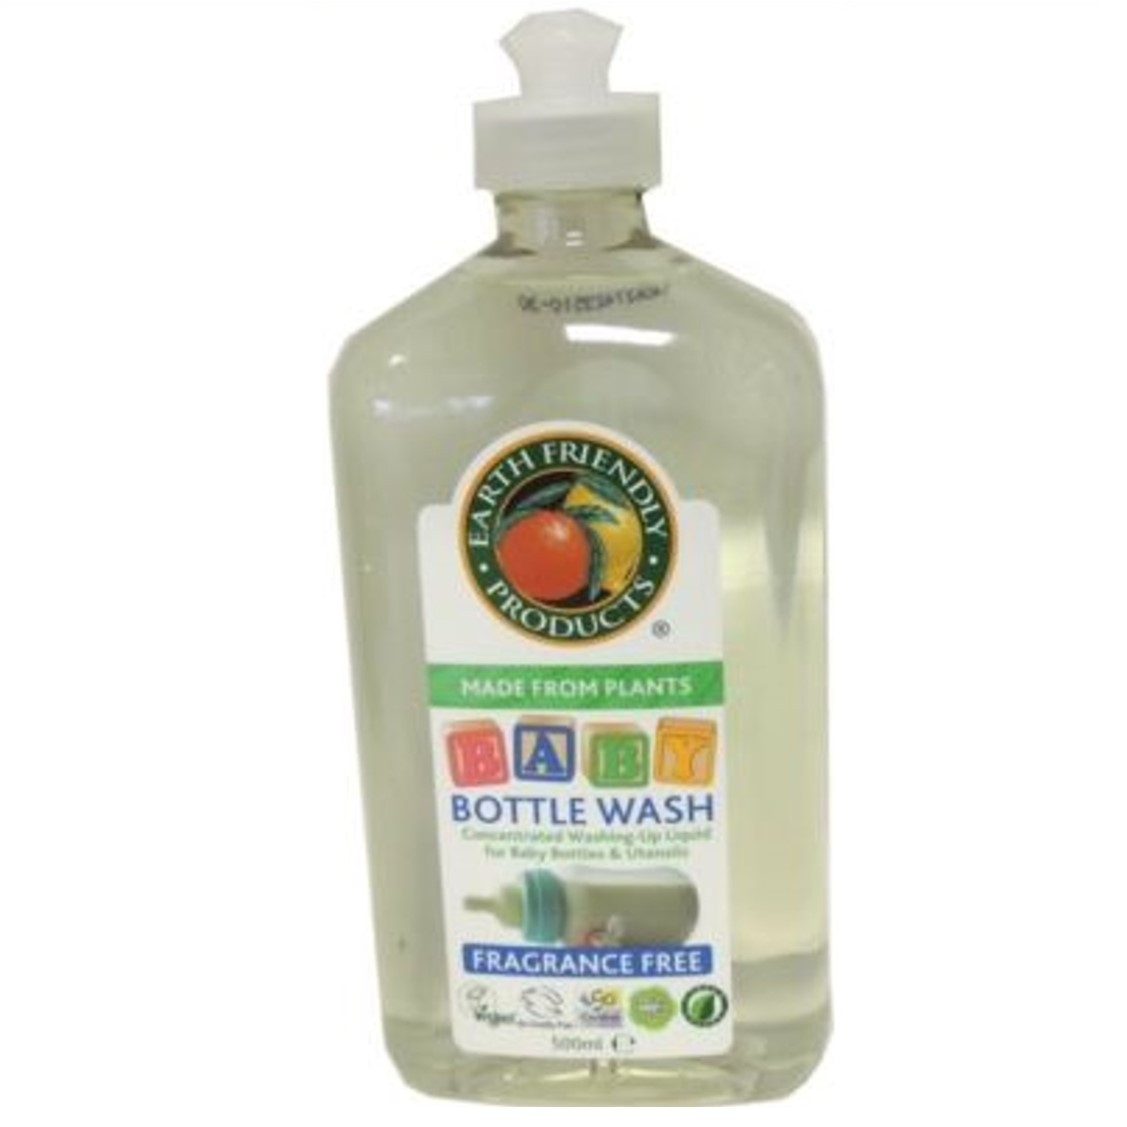 Earth Friendly Baby Bottle Wash, 500ml